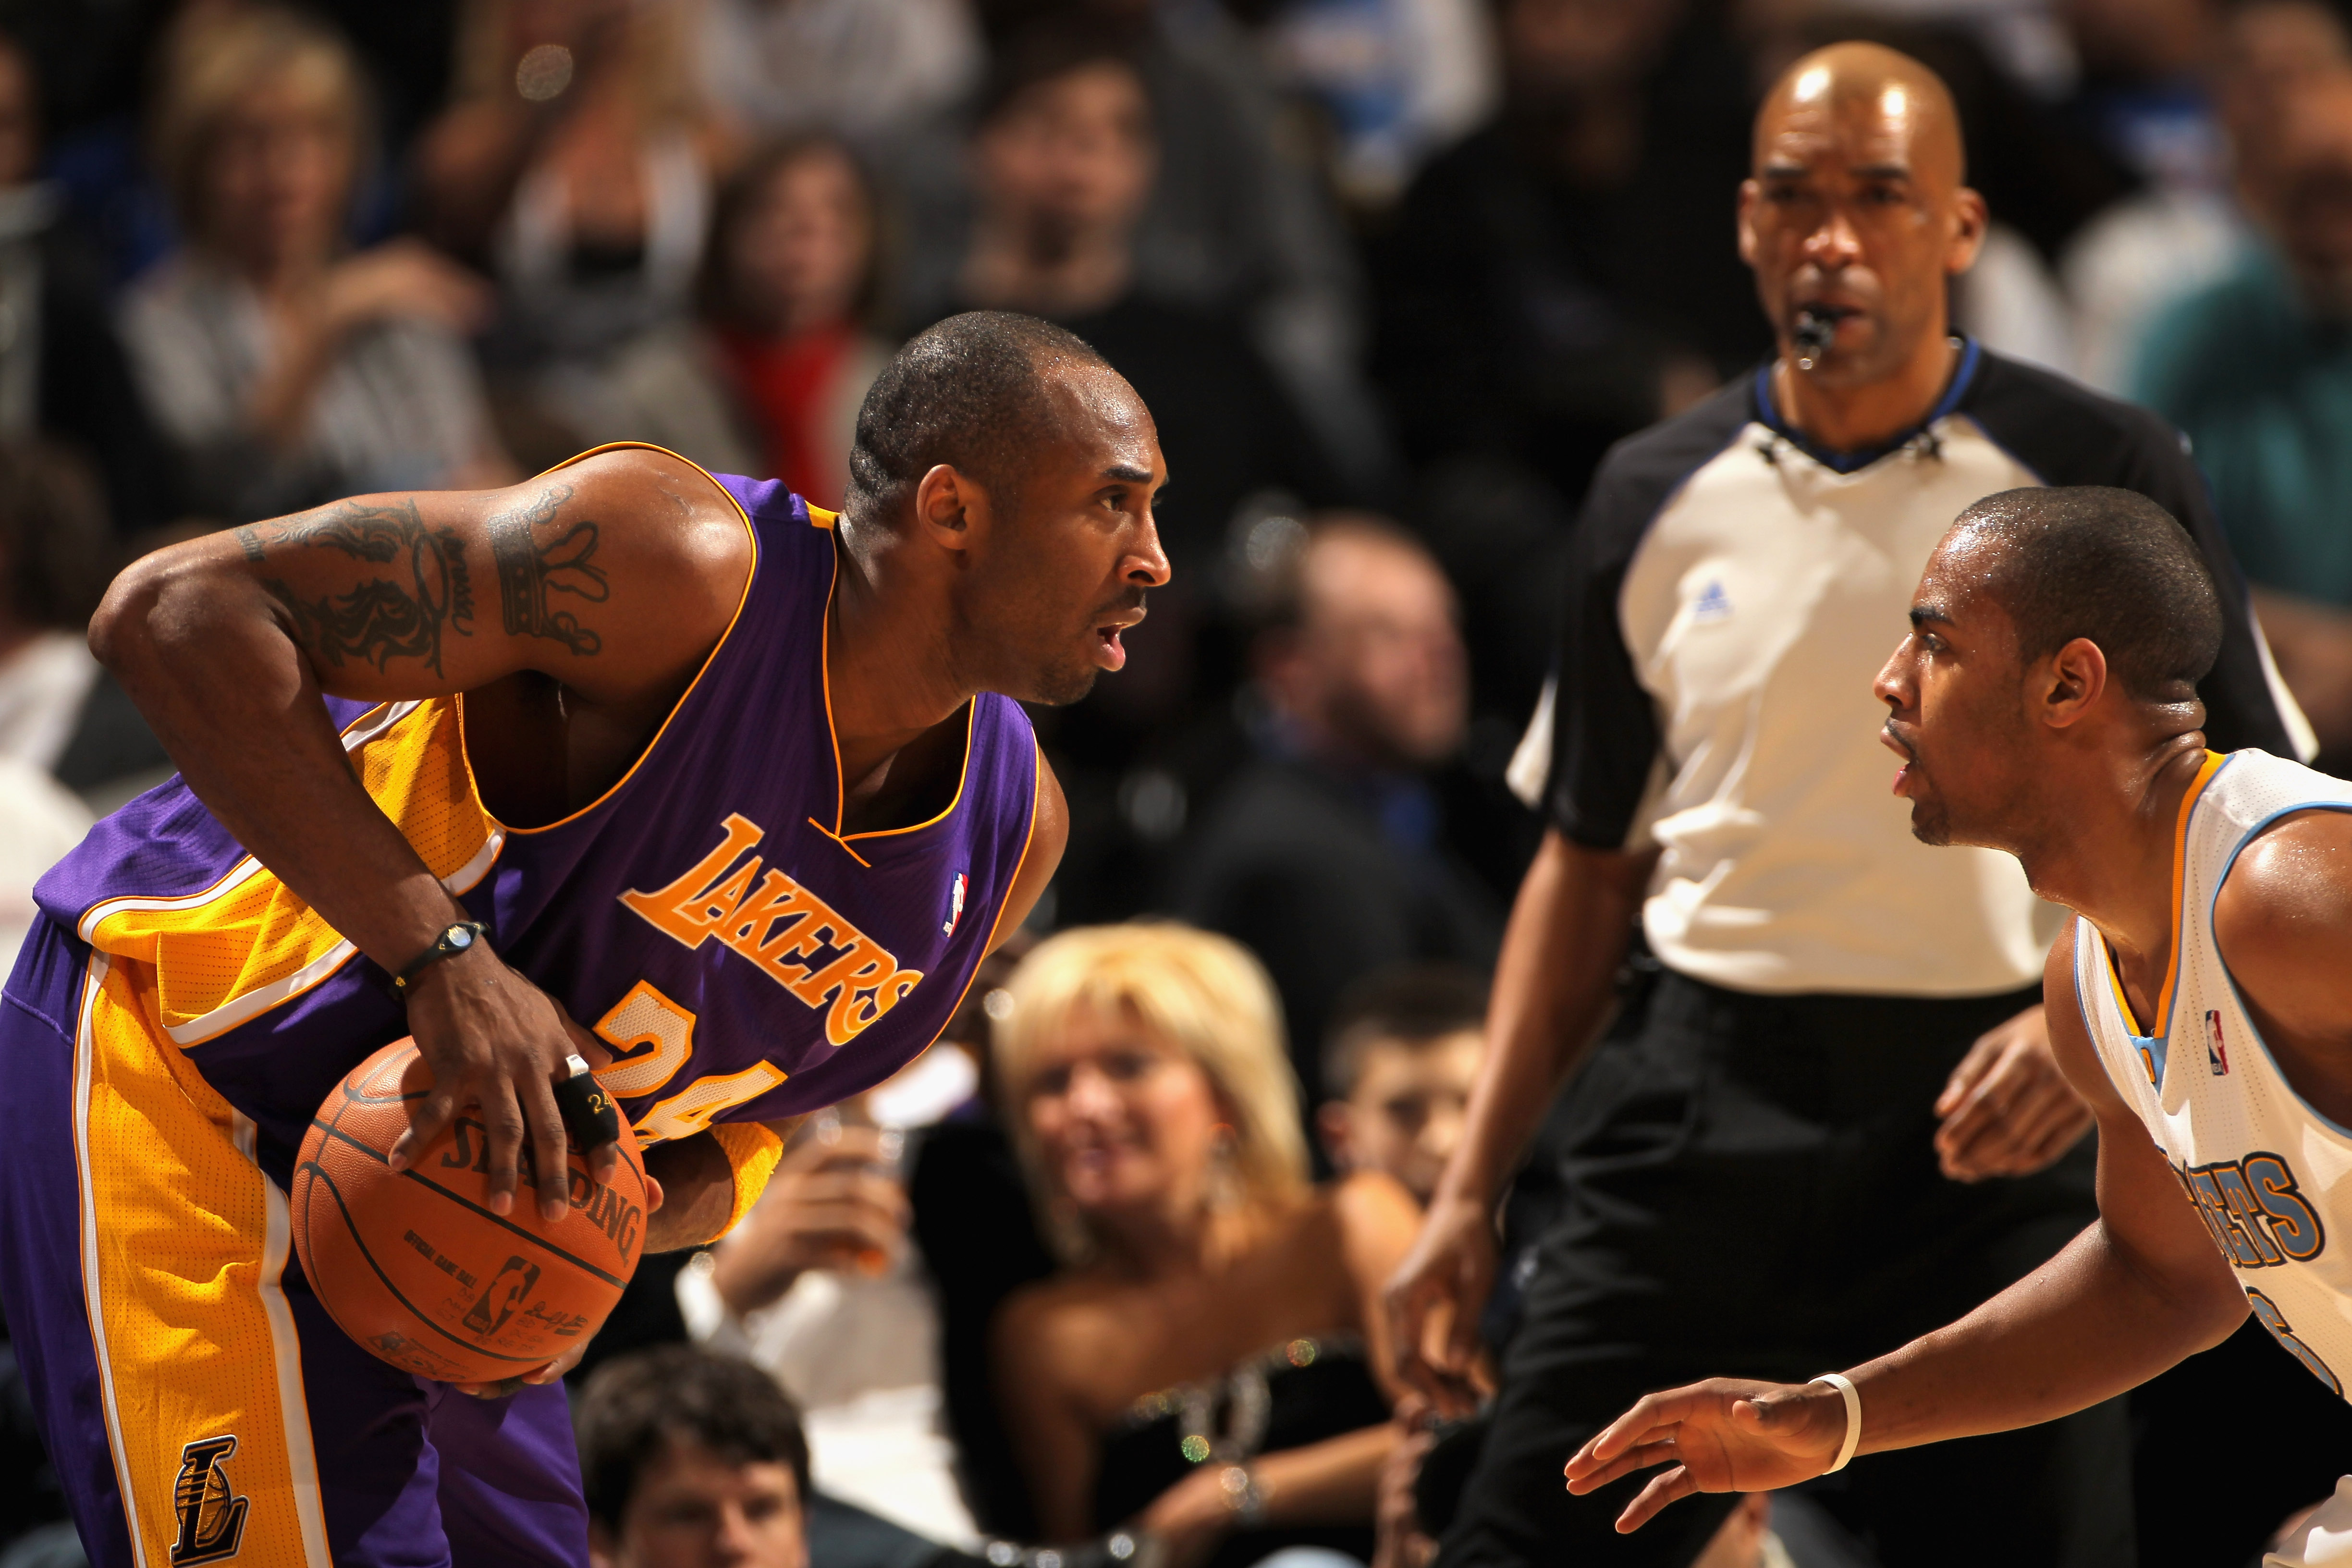 DENVER, CO - JANUARY 21:  Kobe Bryant #24 of the Los Angeles Lakers controls the ball against the defense of Arron Afflalo #6 of the Denver Nuggets at the Pepsi Center on January 21, 2011 in Denver, Colorado. The Lakers defeated the Nuggets 97-107. NOTE T